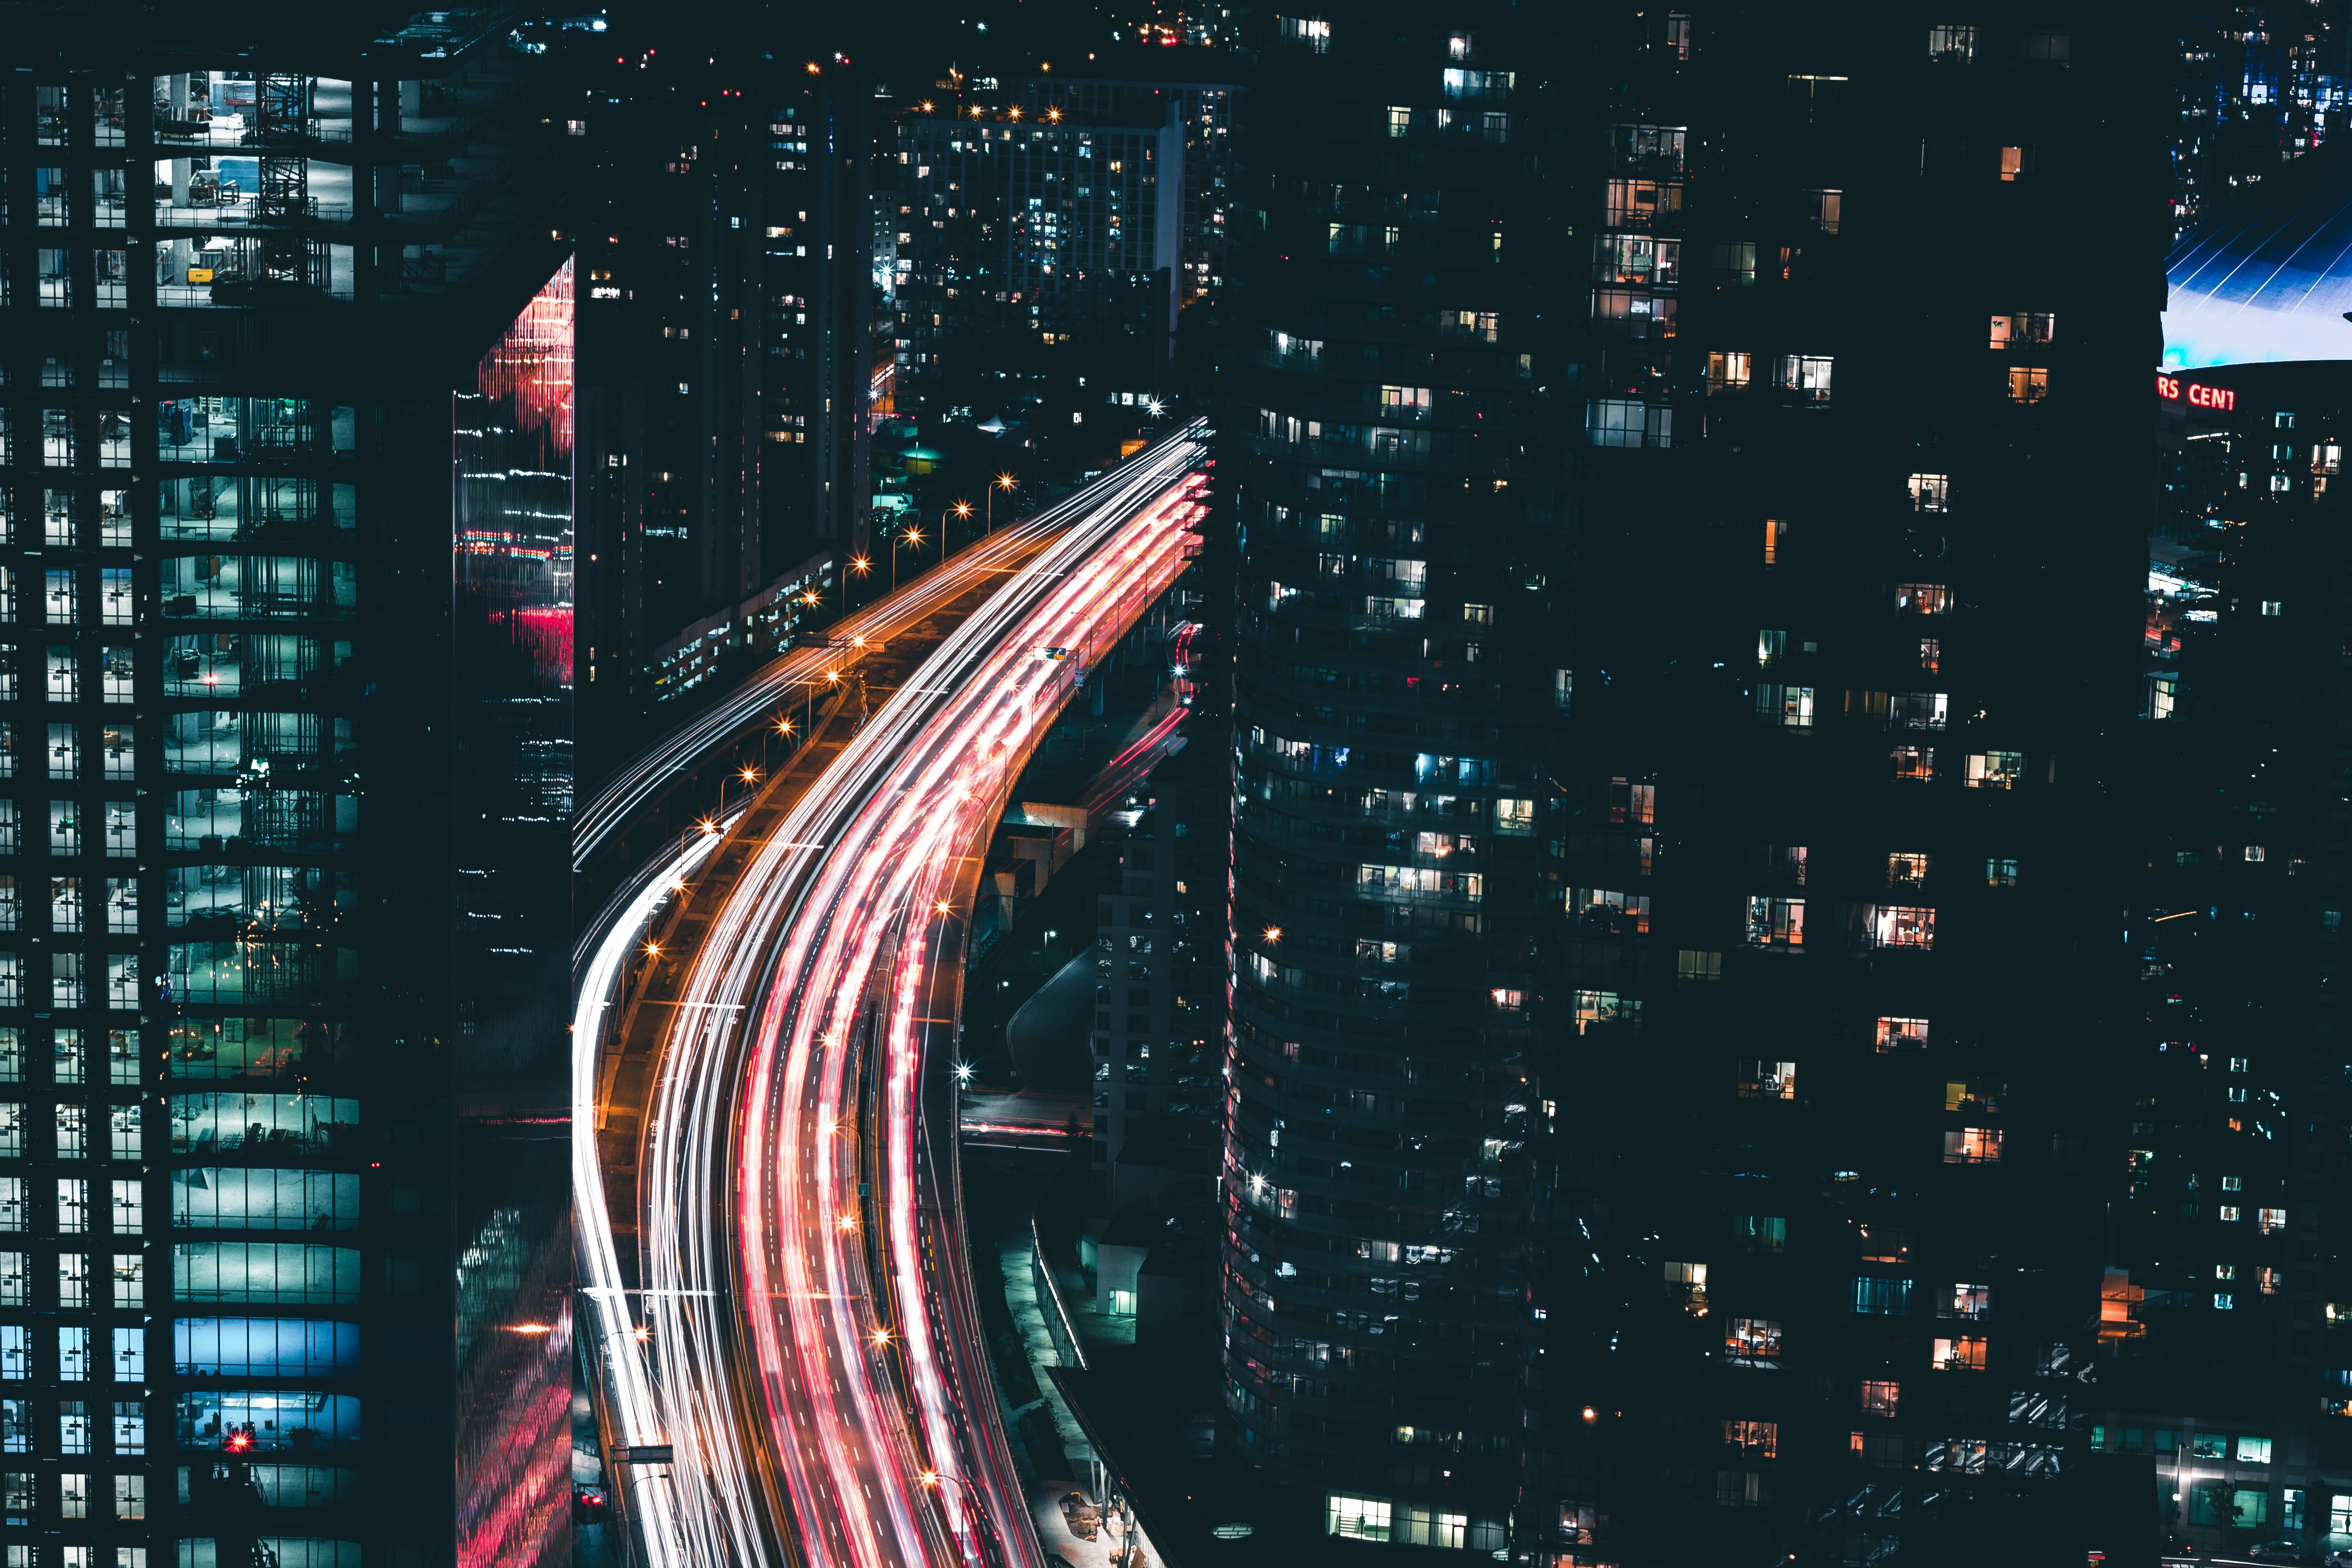 Time-lapse Photography of City